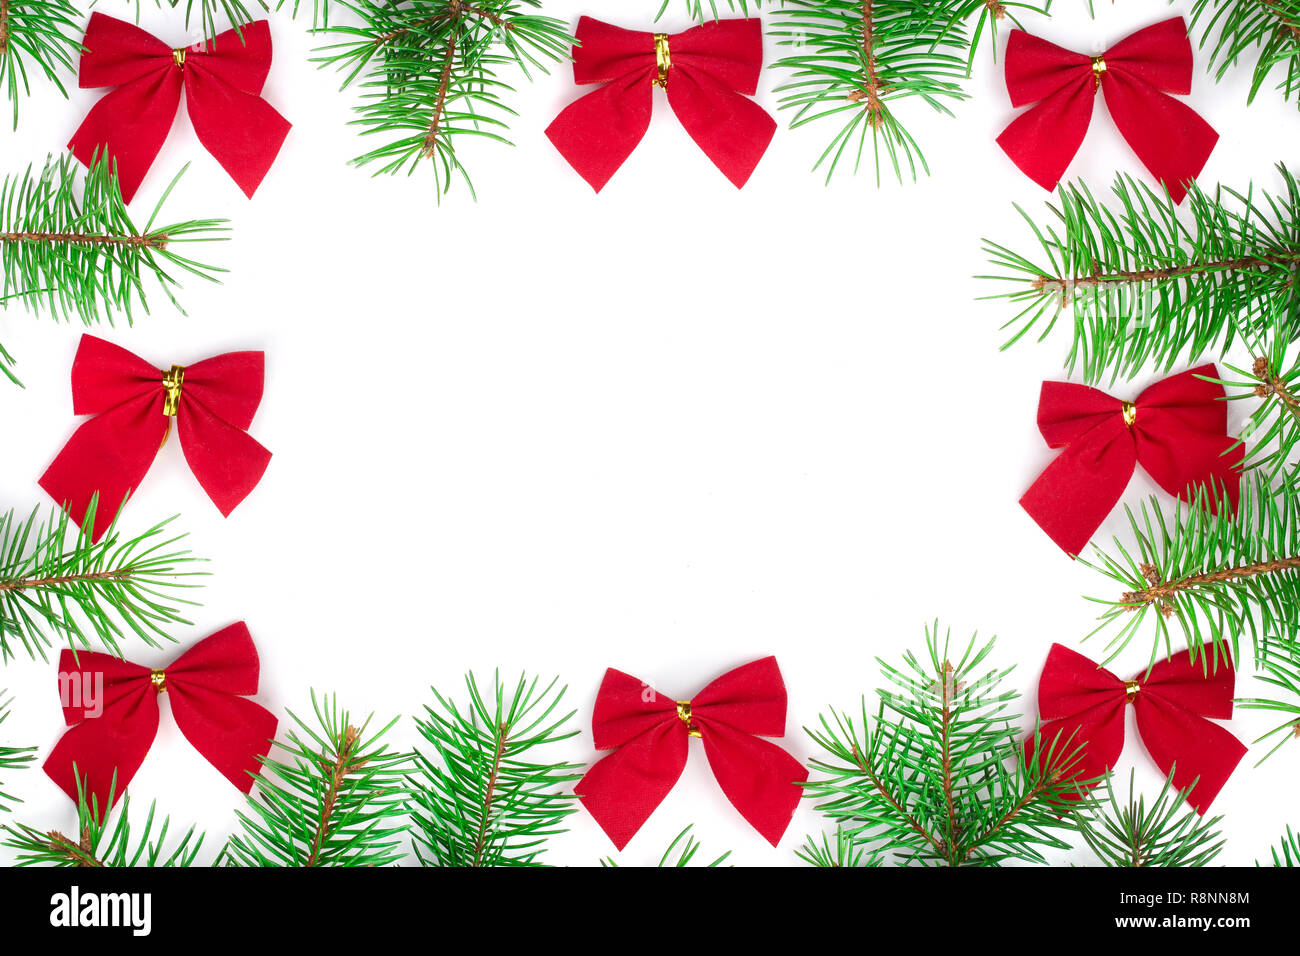 Christmas Frame of Fir tree branch with red bow isolated on white background with copy space for your text. Top view - Stock Image